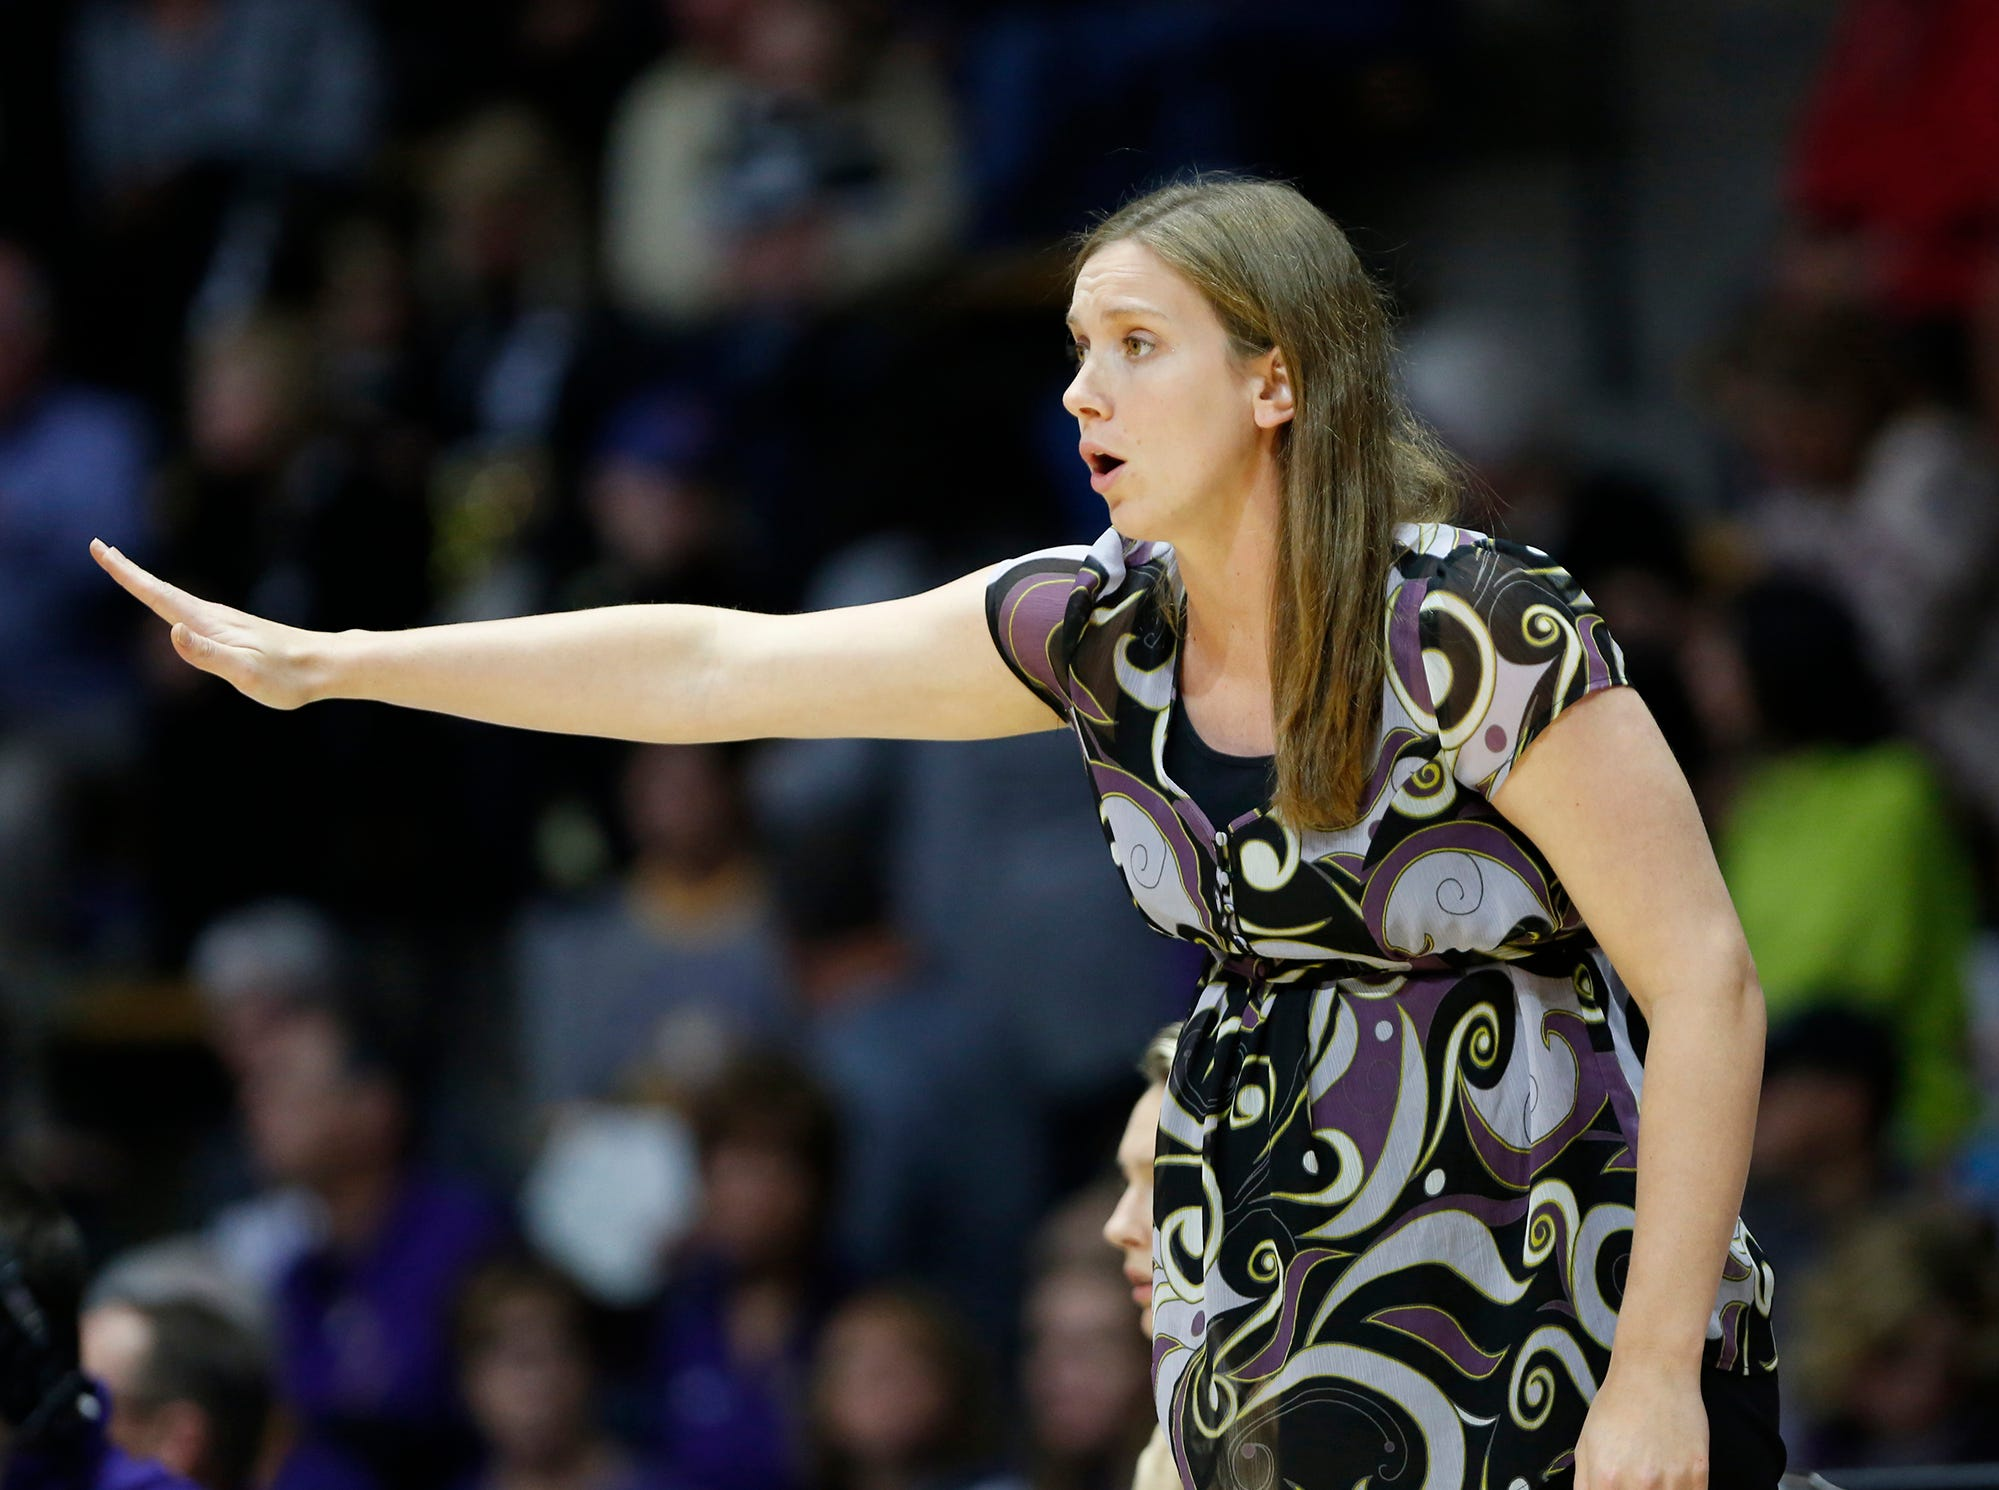 Ashland head coach Kari Pickens shouts instructions to the Eagles as they face Purdue Sunday, November 4, 2018, at Mackey Arena. Purdue defeated Ashland 85-69.